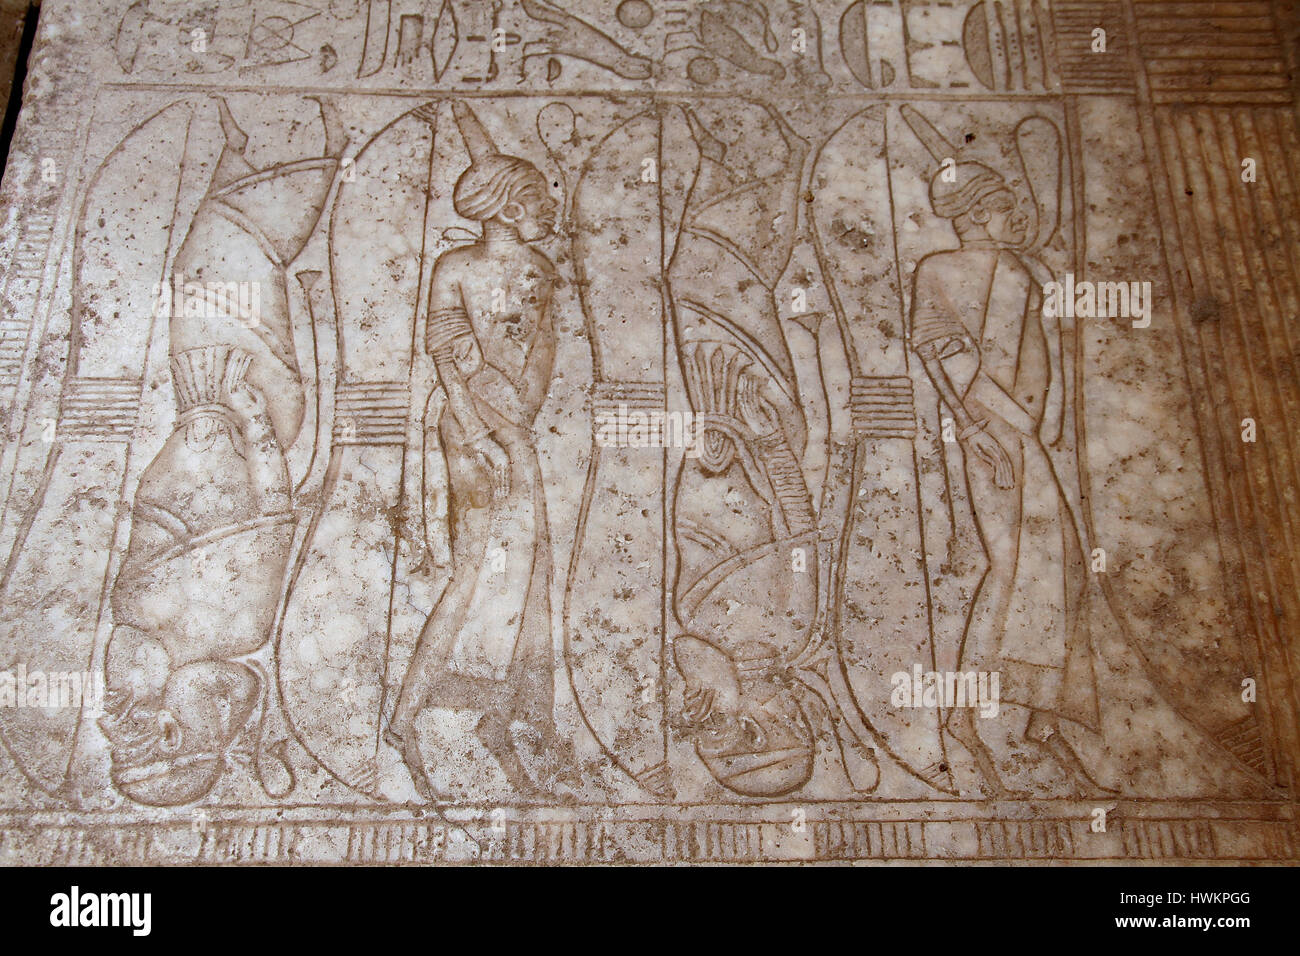 Enemies of ancient Egypt depicted standing on tiptoes on the floor of the Great  Hypostyle Hall at Karnak Temple - Stock Image